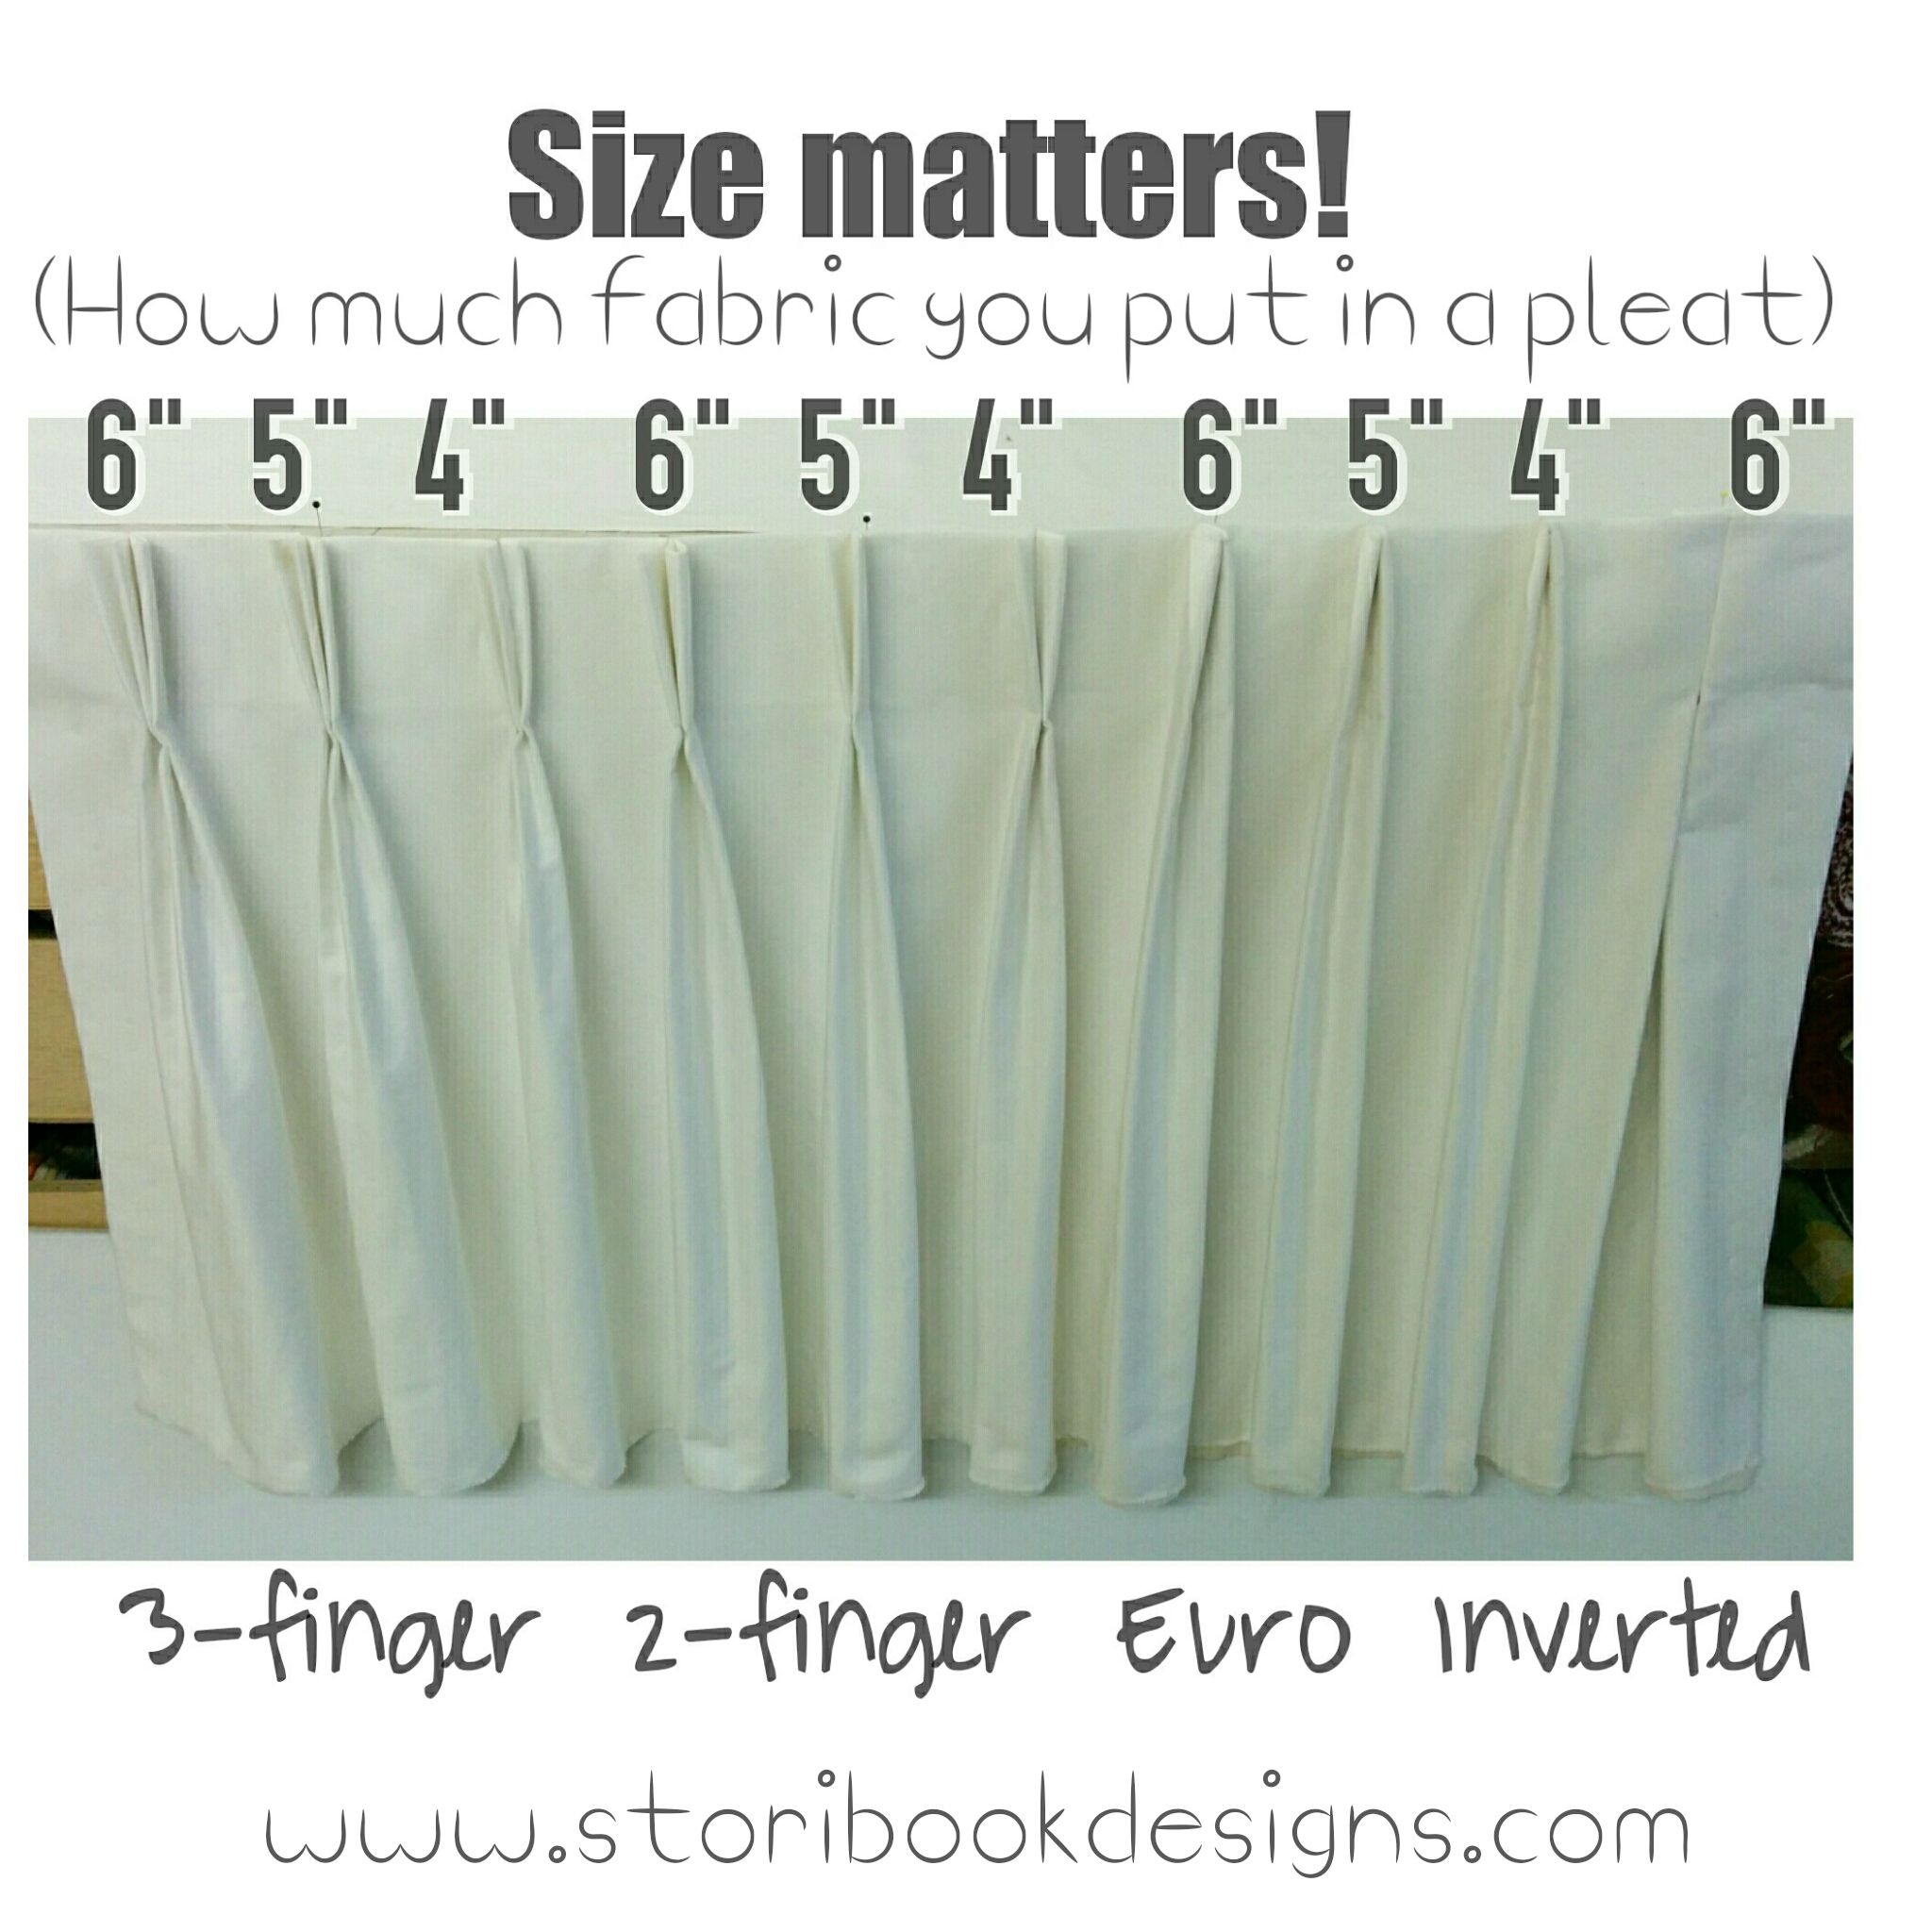 Photo: The Amount Of #fabric You Plan For Each Pleat Makes